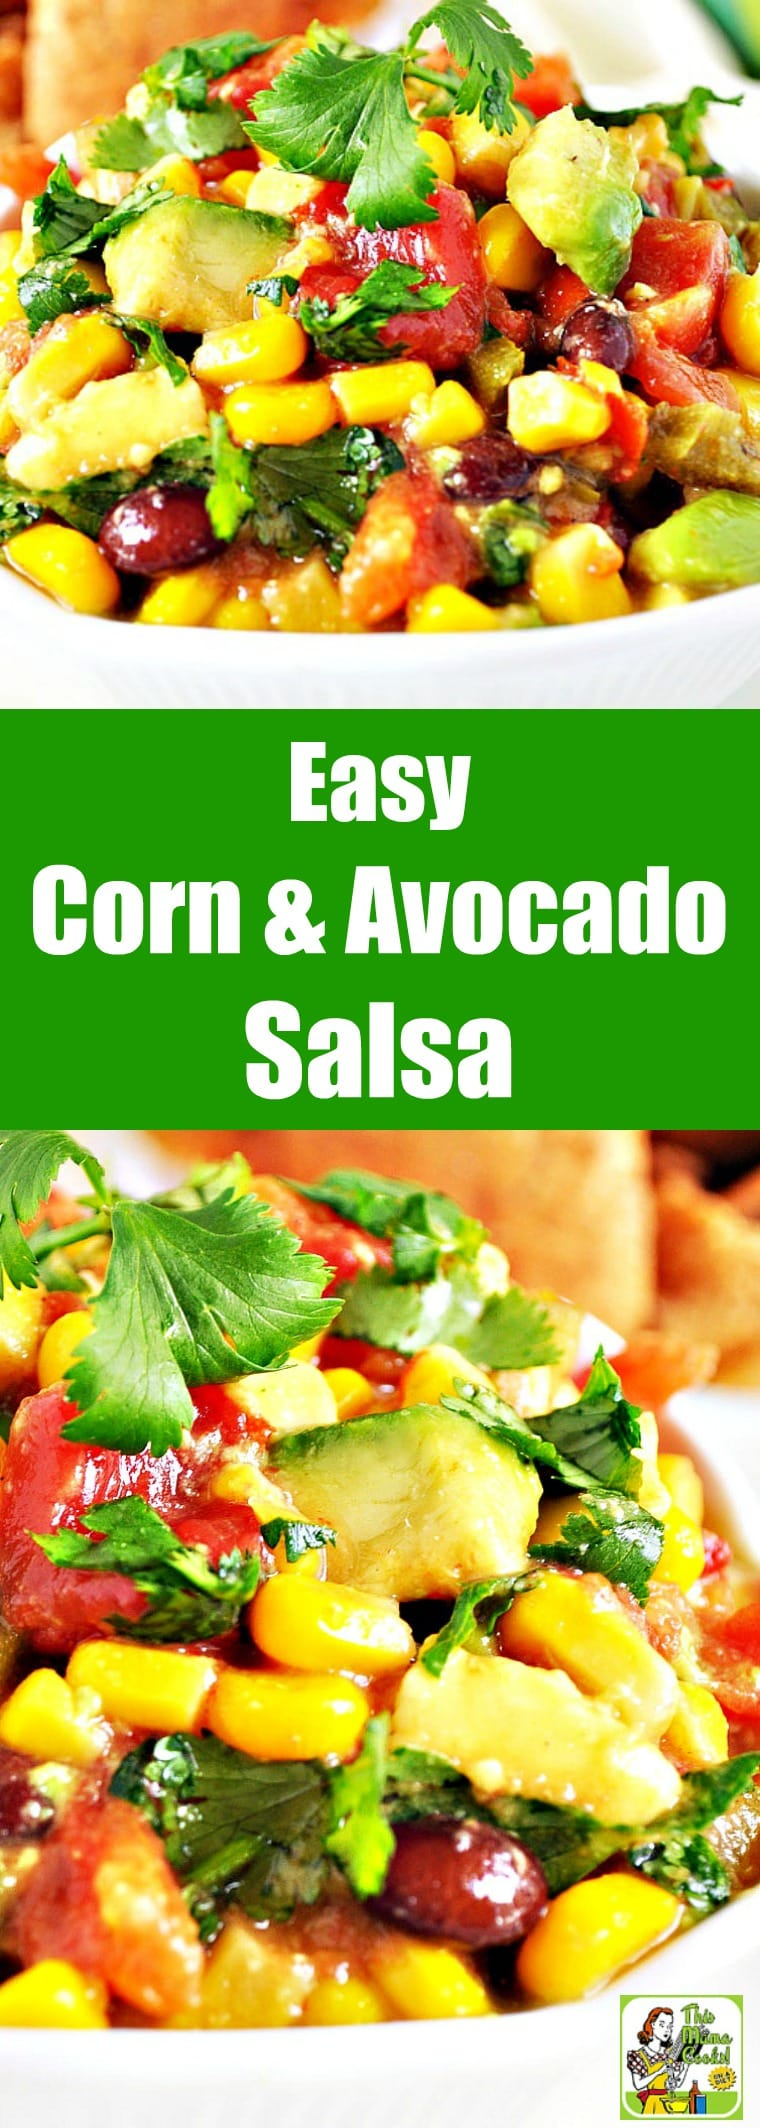 This Super Easy Corn & Avocado Salsa is a terrific snack for parties. With only four ingredients, this simple, but super easy salsa dip recipe requires you to just open a few jars and add an avocado. #snacks #lowcaloriesnacks #salsa #avocado #recipes #easy #recipeoftheday #glutenfree #easyrecipe #easyrecipes #glutenfreerecipes